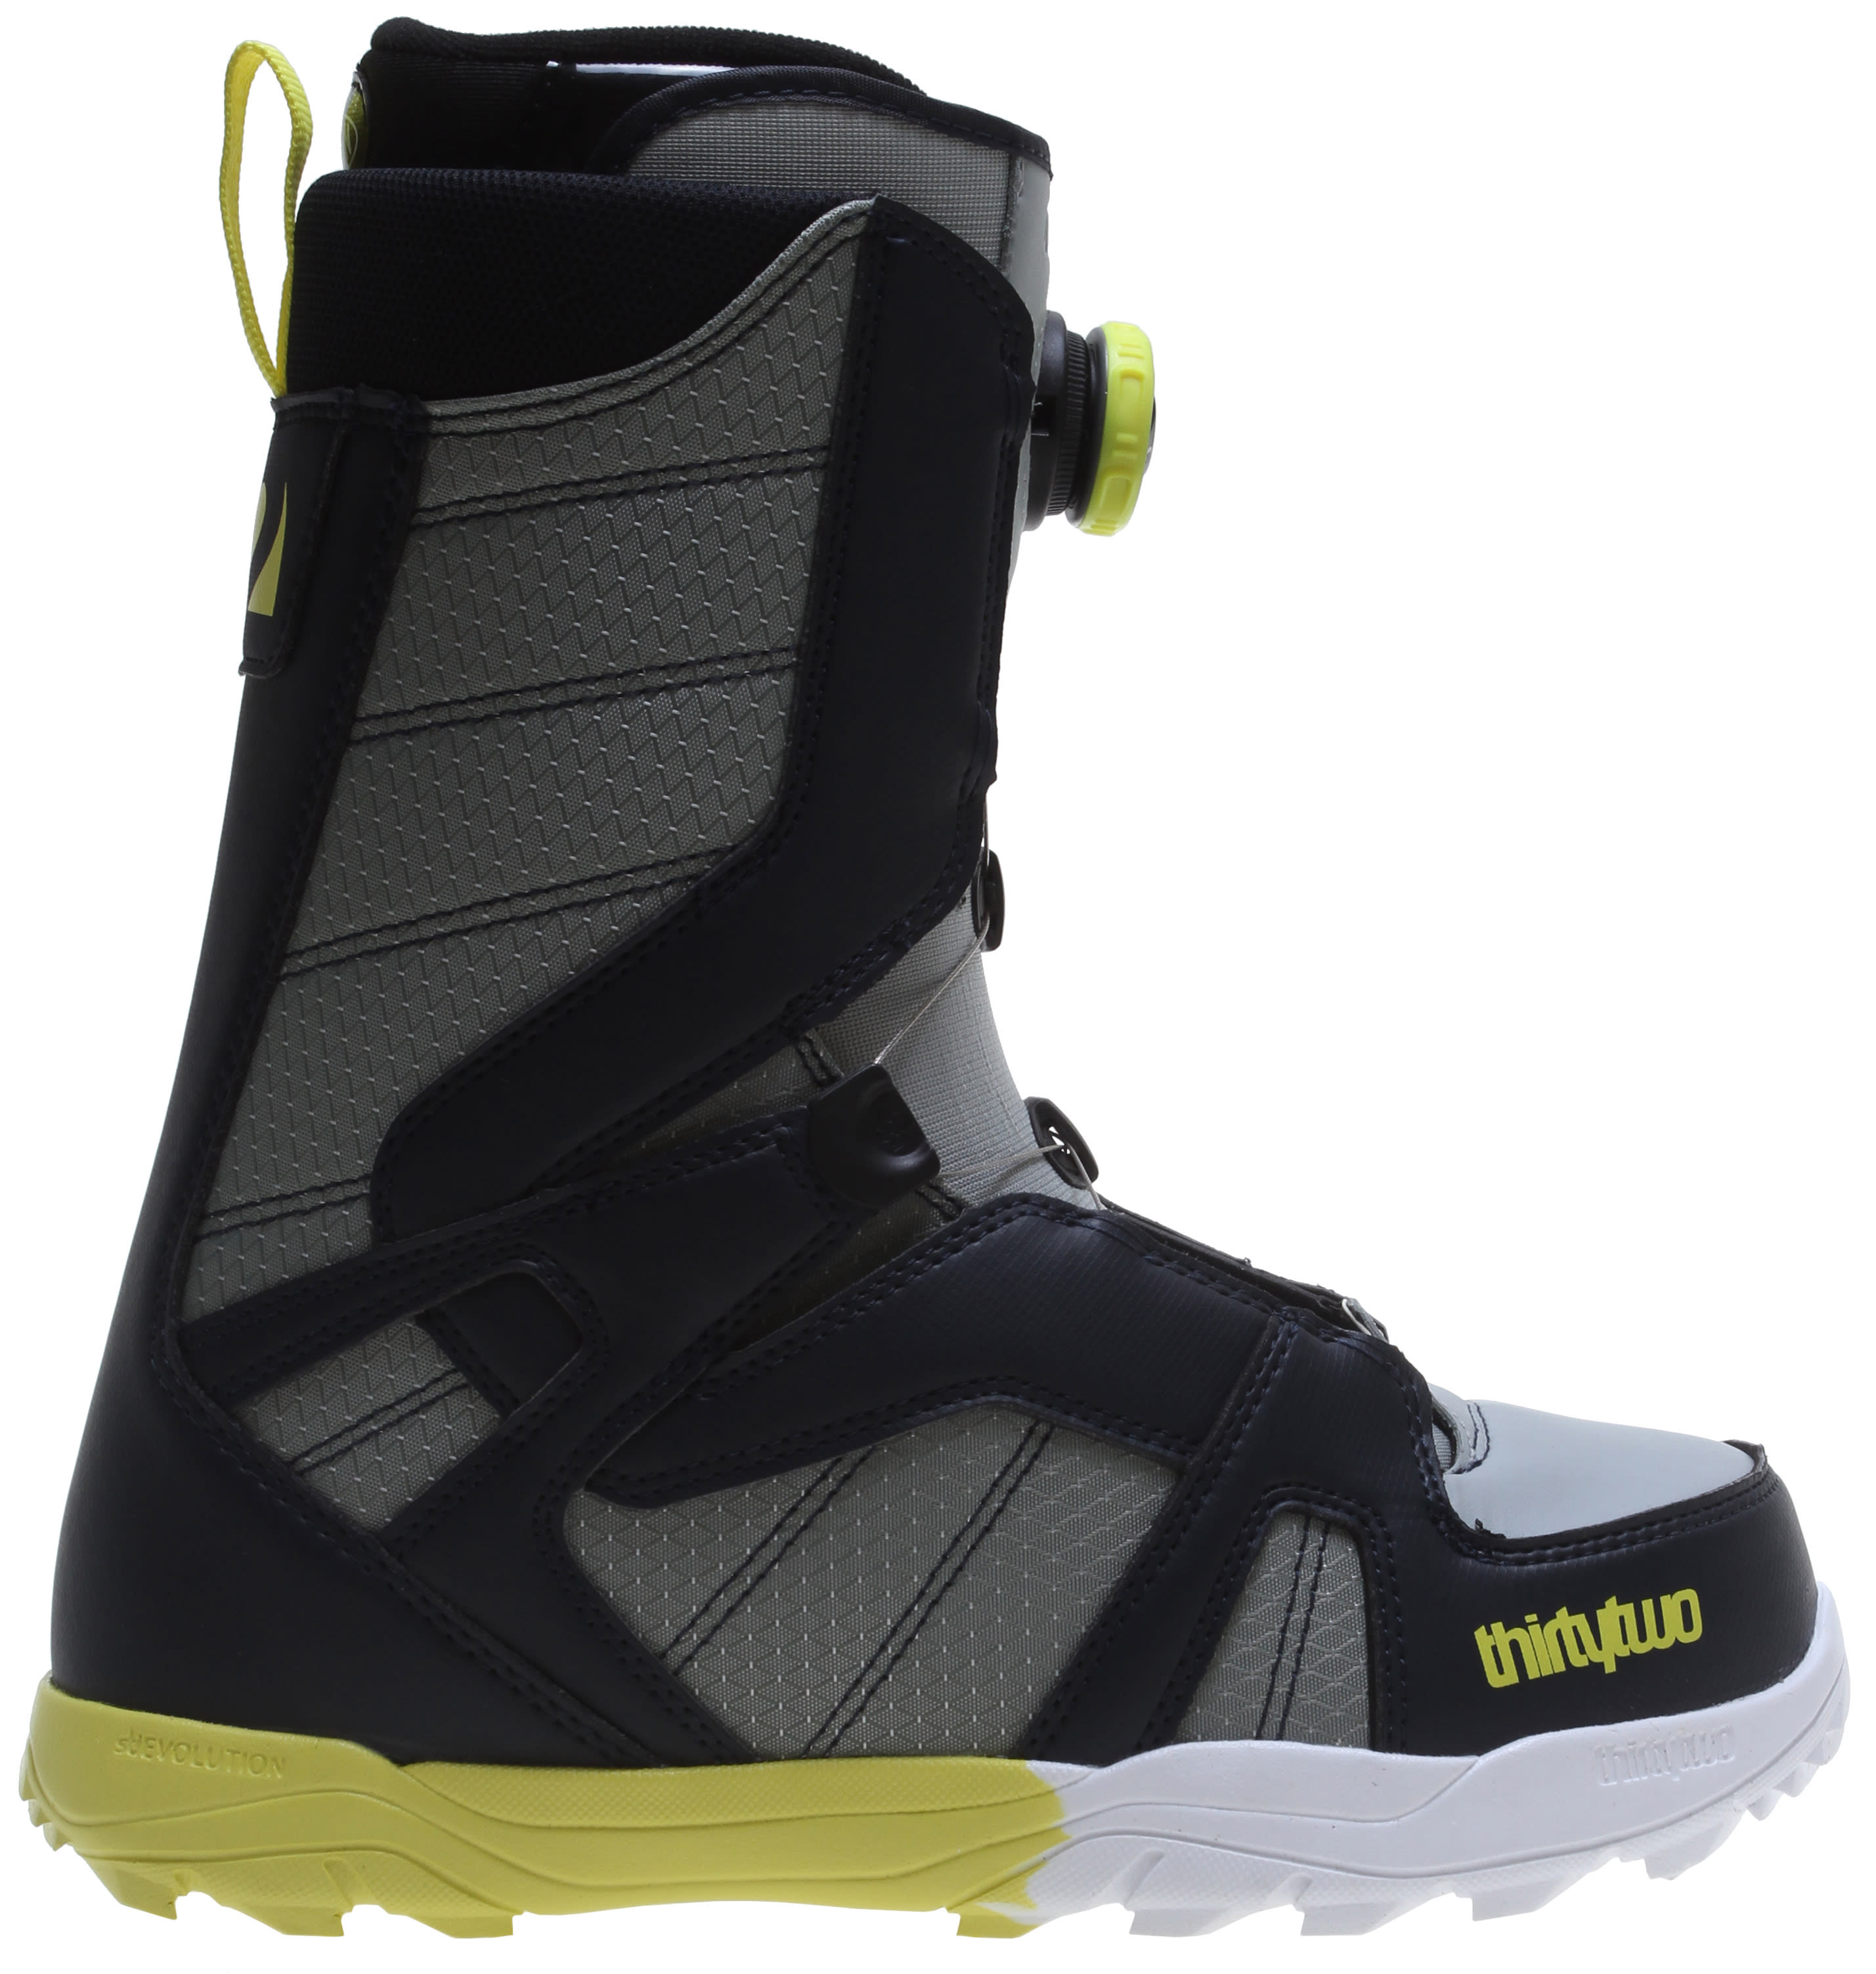 32 Thirty Two Stw Boa Snowboard Boots